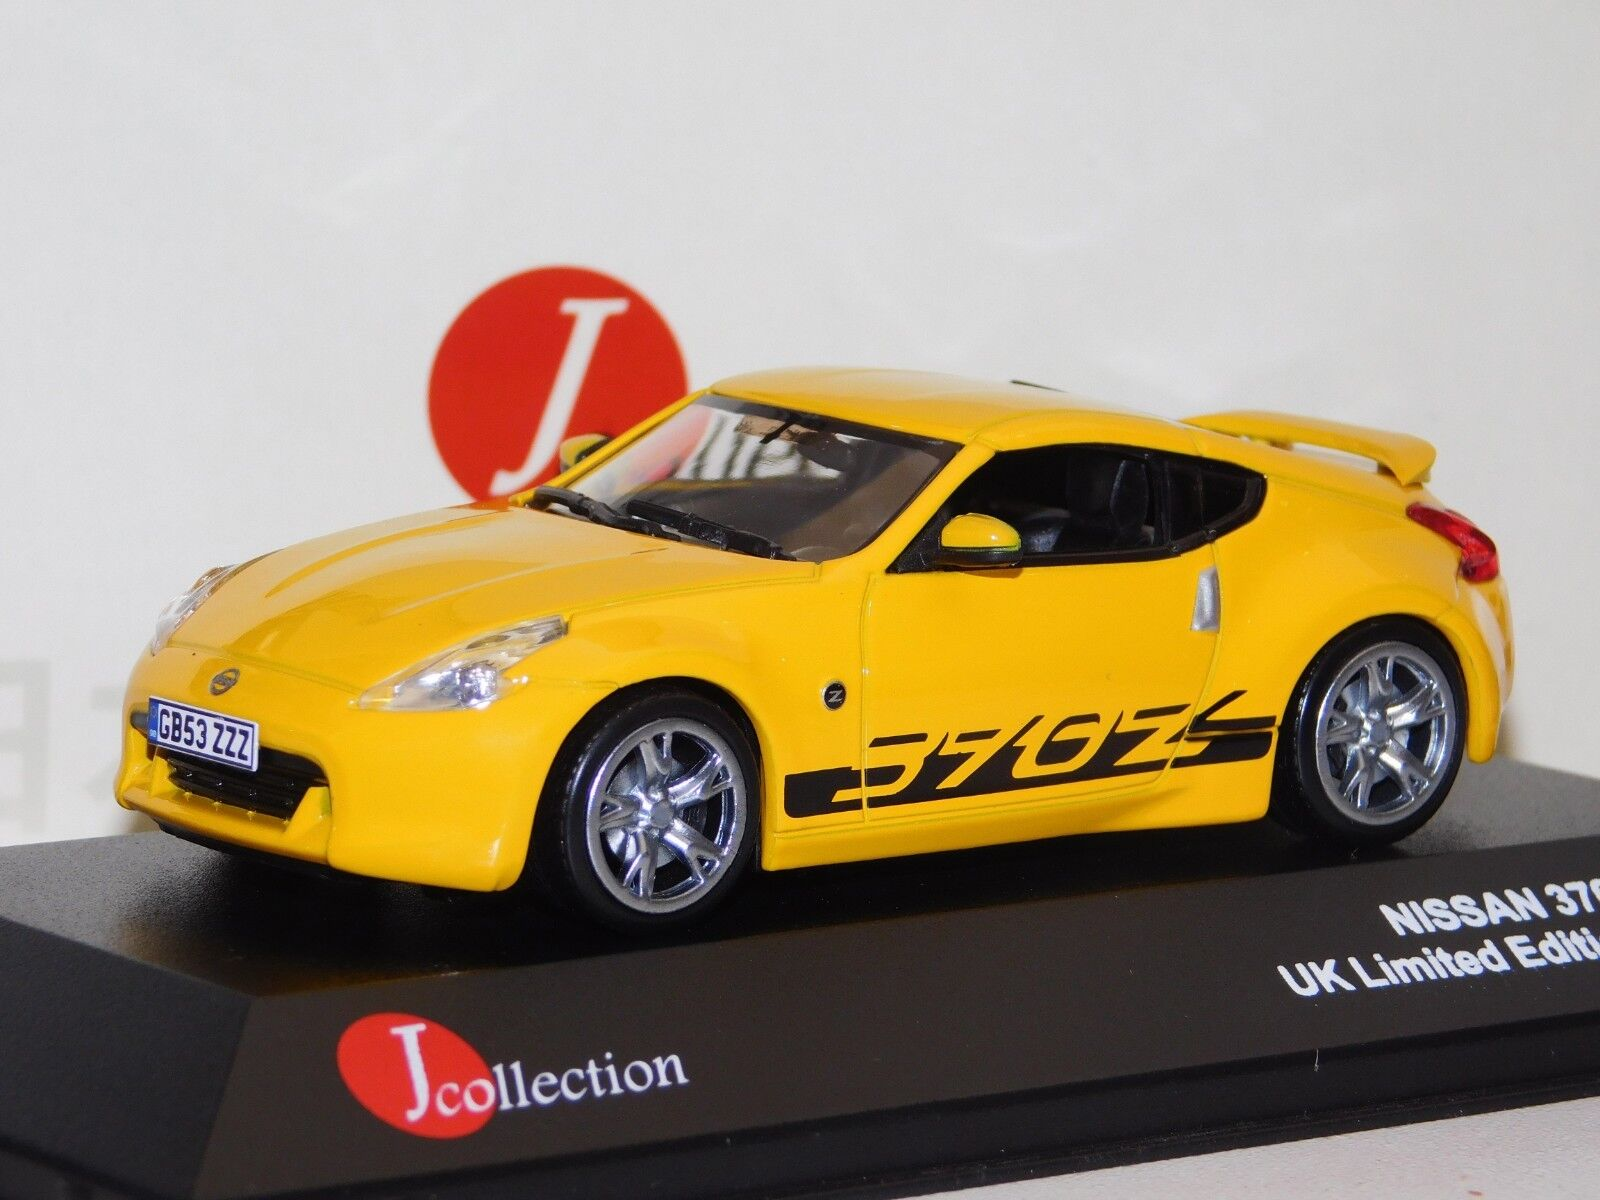 NISSAN 370Z 2009 UK LIMITED EDITION YELLOW J COLLECTION JC160 1 43